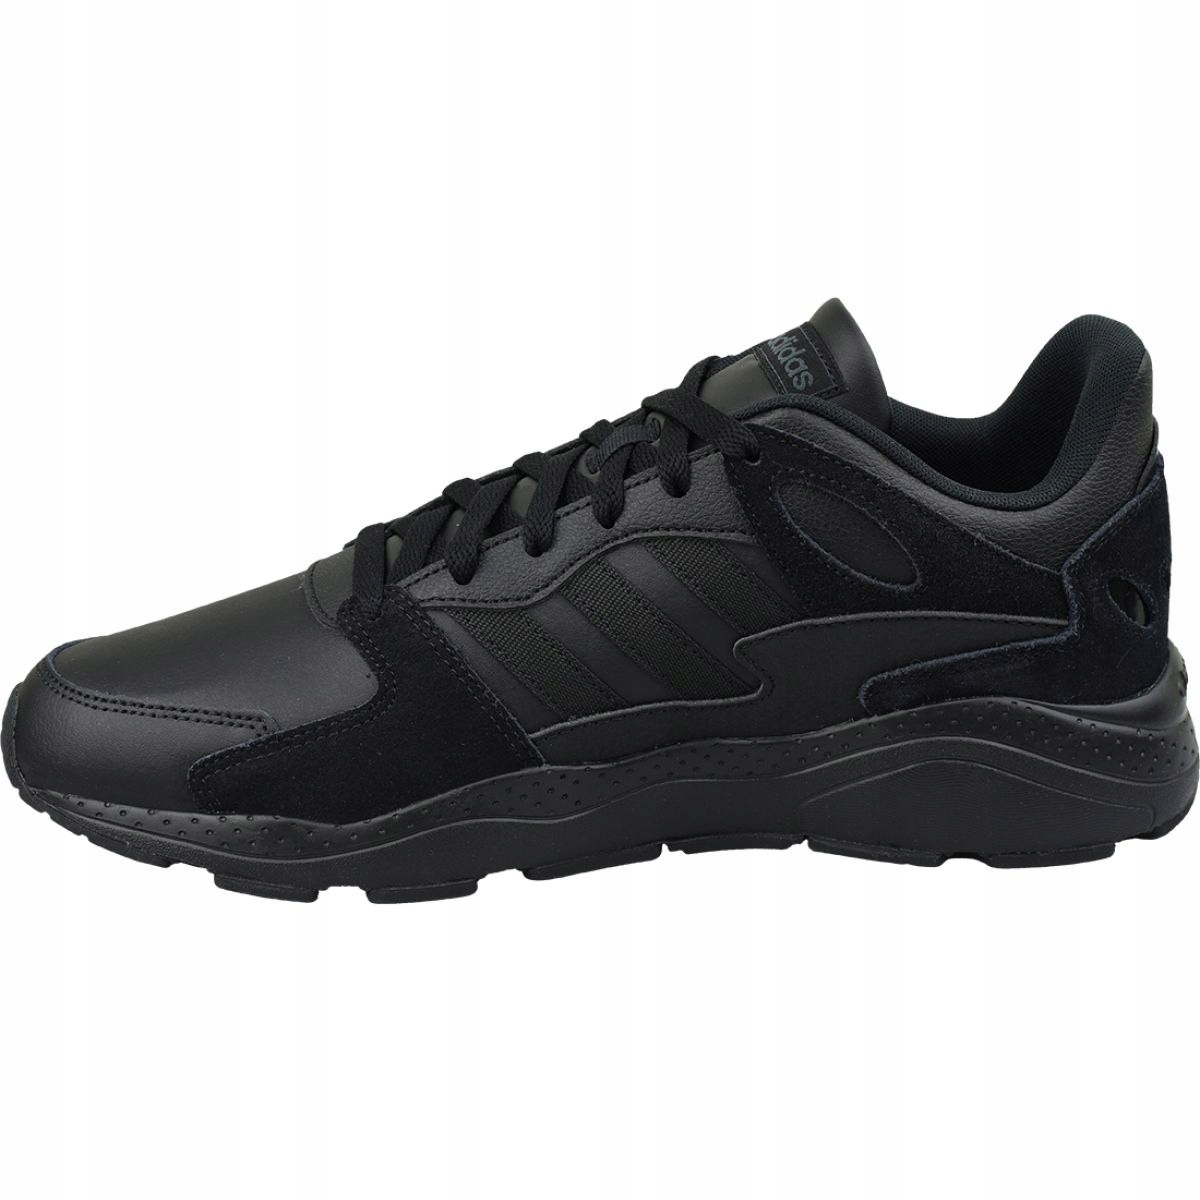 Adidas-Crazychaos-M-EE5587-shoes-black thumbnail 2